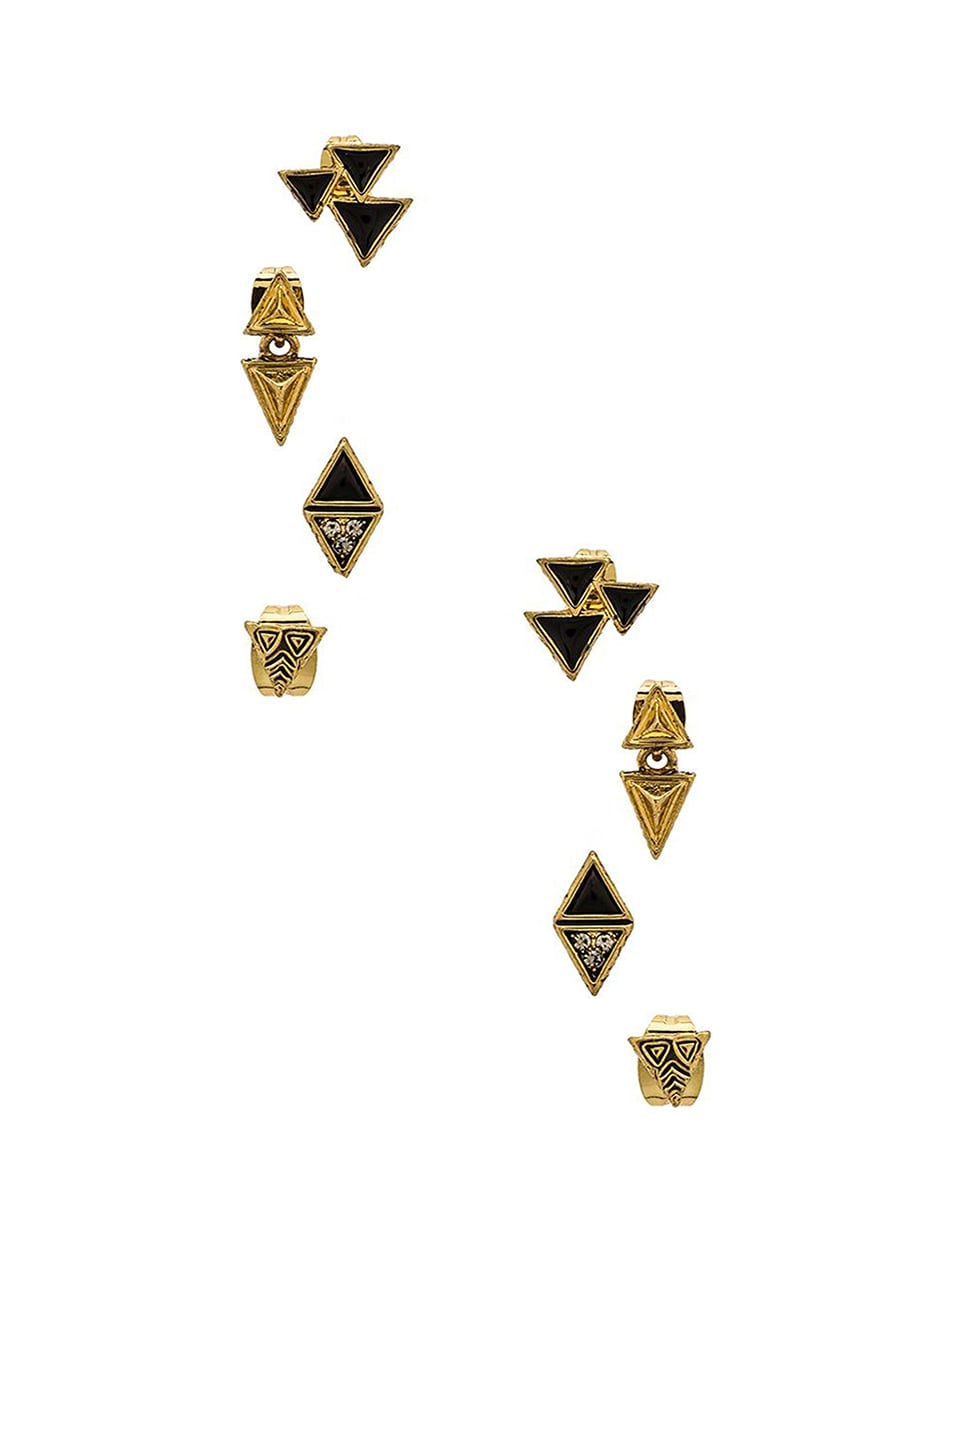 House of Harlow 1960 House of Harlow Tessellation Stud Earring Set in Gold & Black